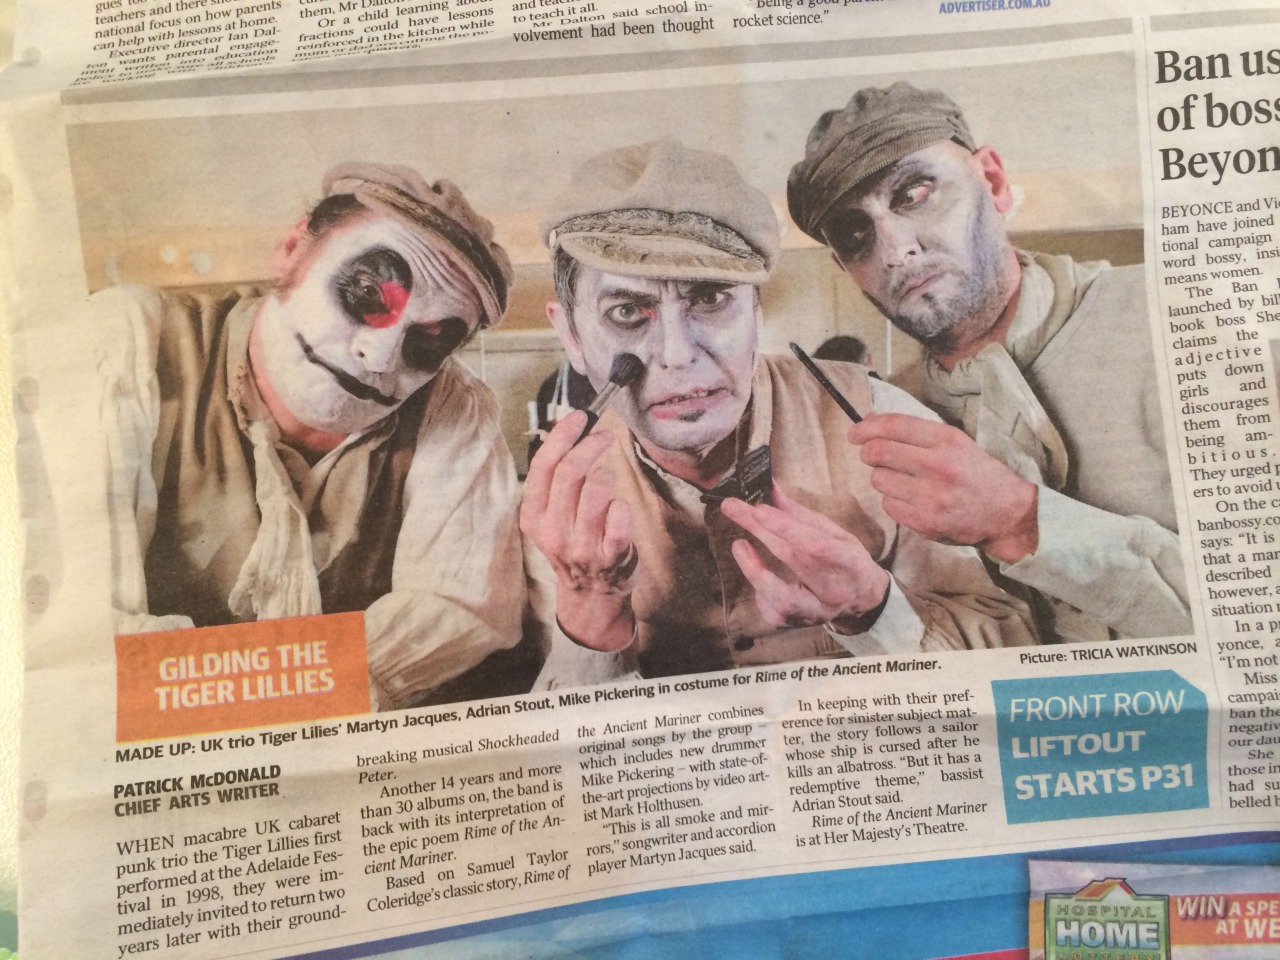 http://www.adelaidenow.com.au/entertainment/special-features/adelaide-festival-review-2014-rime-of-the-ancient-mariner/story-fnintumu-1226853670078